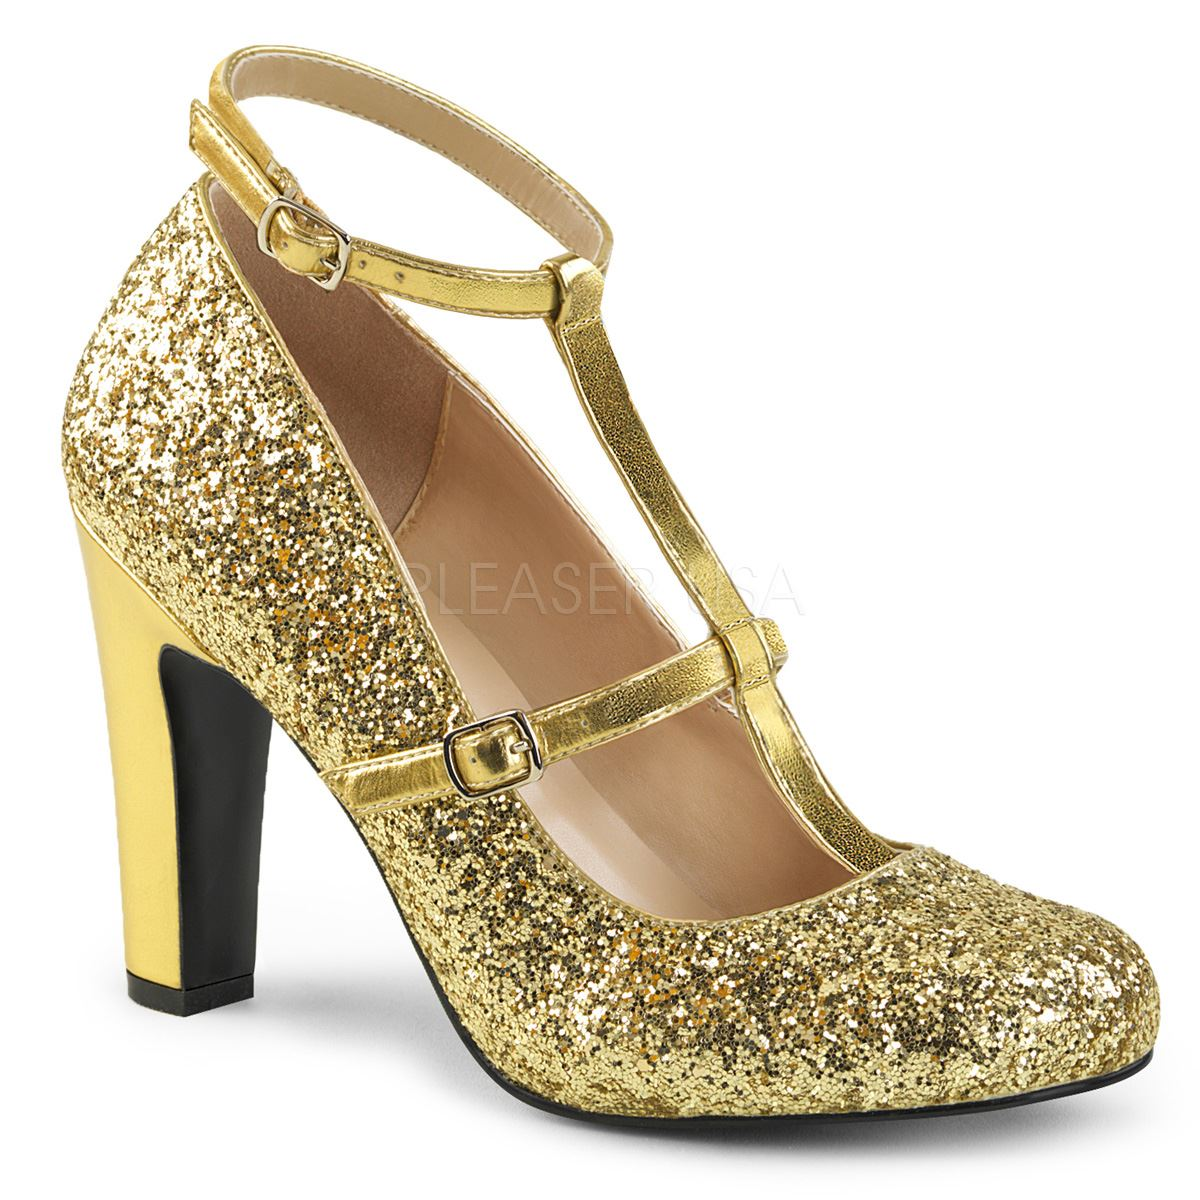 Pleaser Pink Label Round Gold Toe Pump With Glitters Gold Round Glitter-Metallic. Pu 2dab67